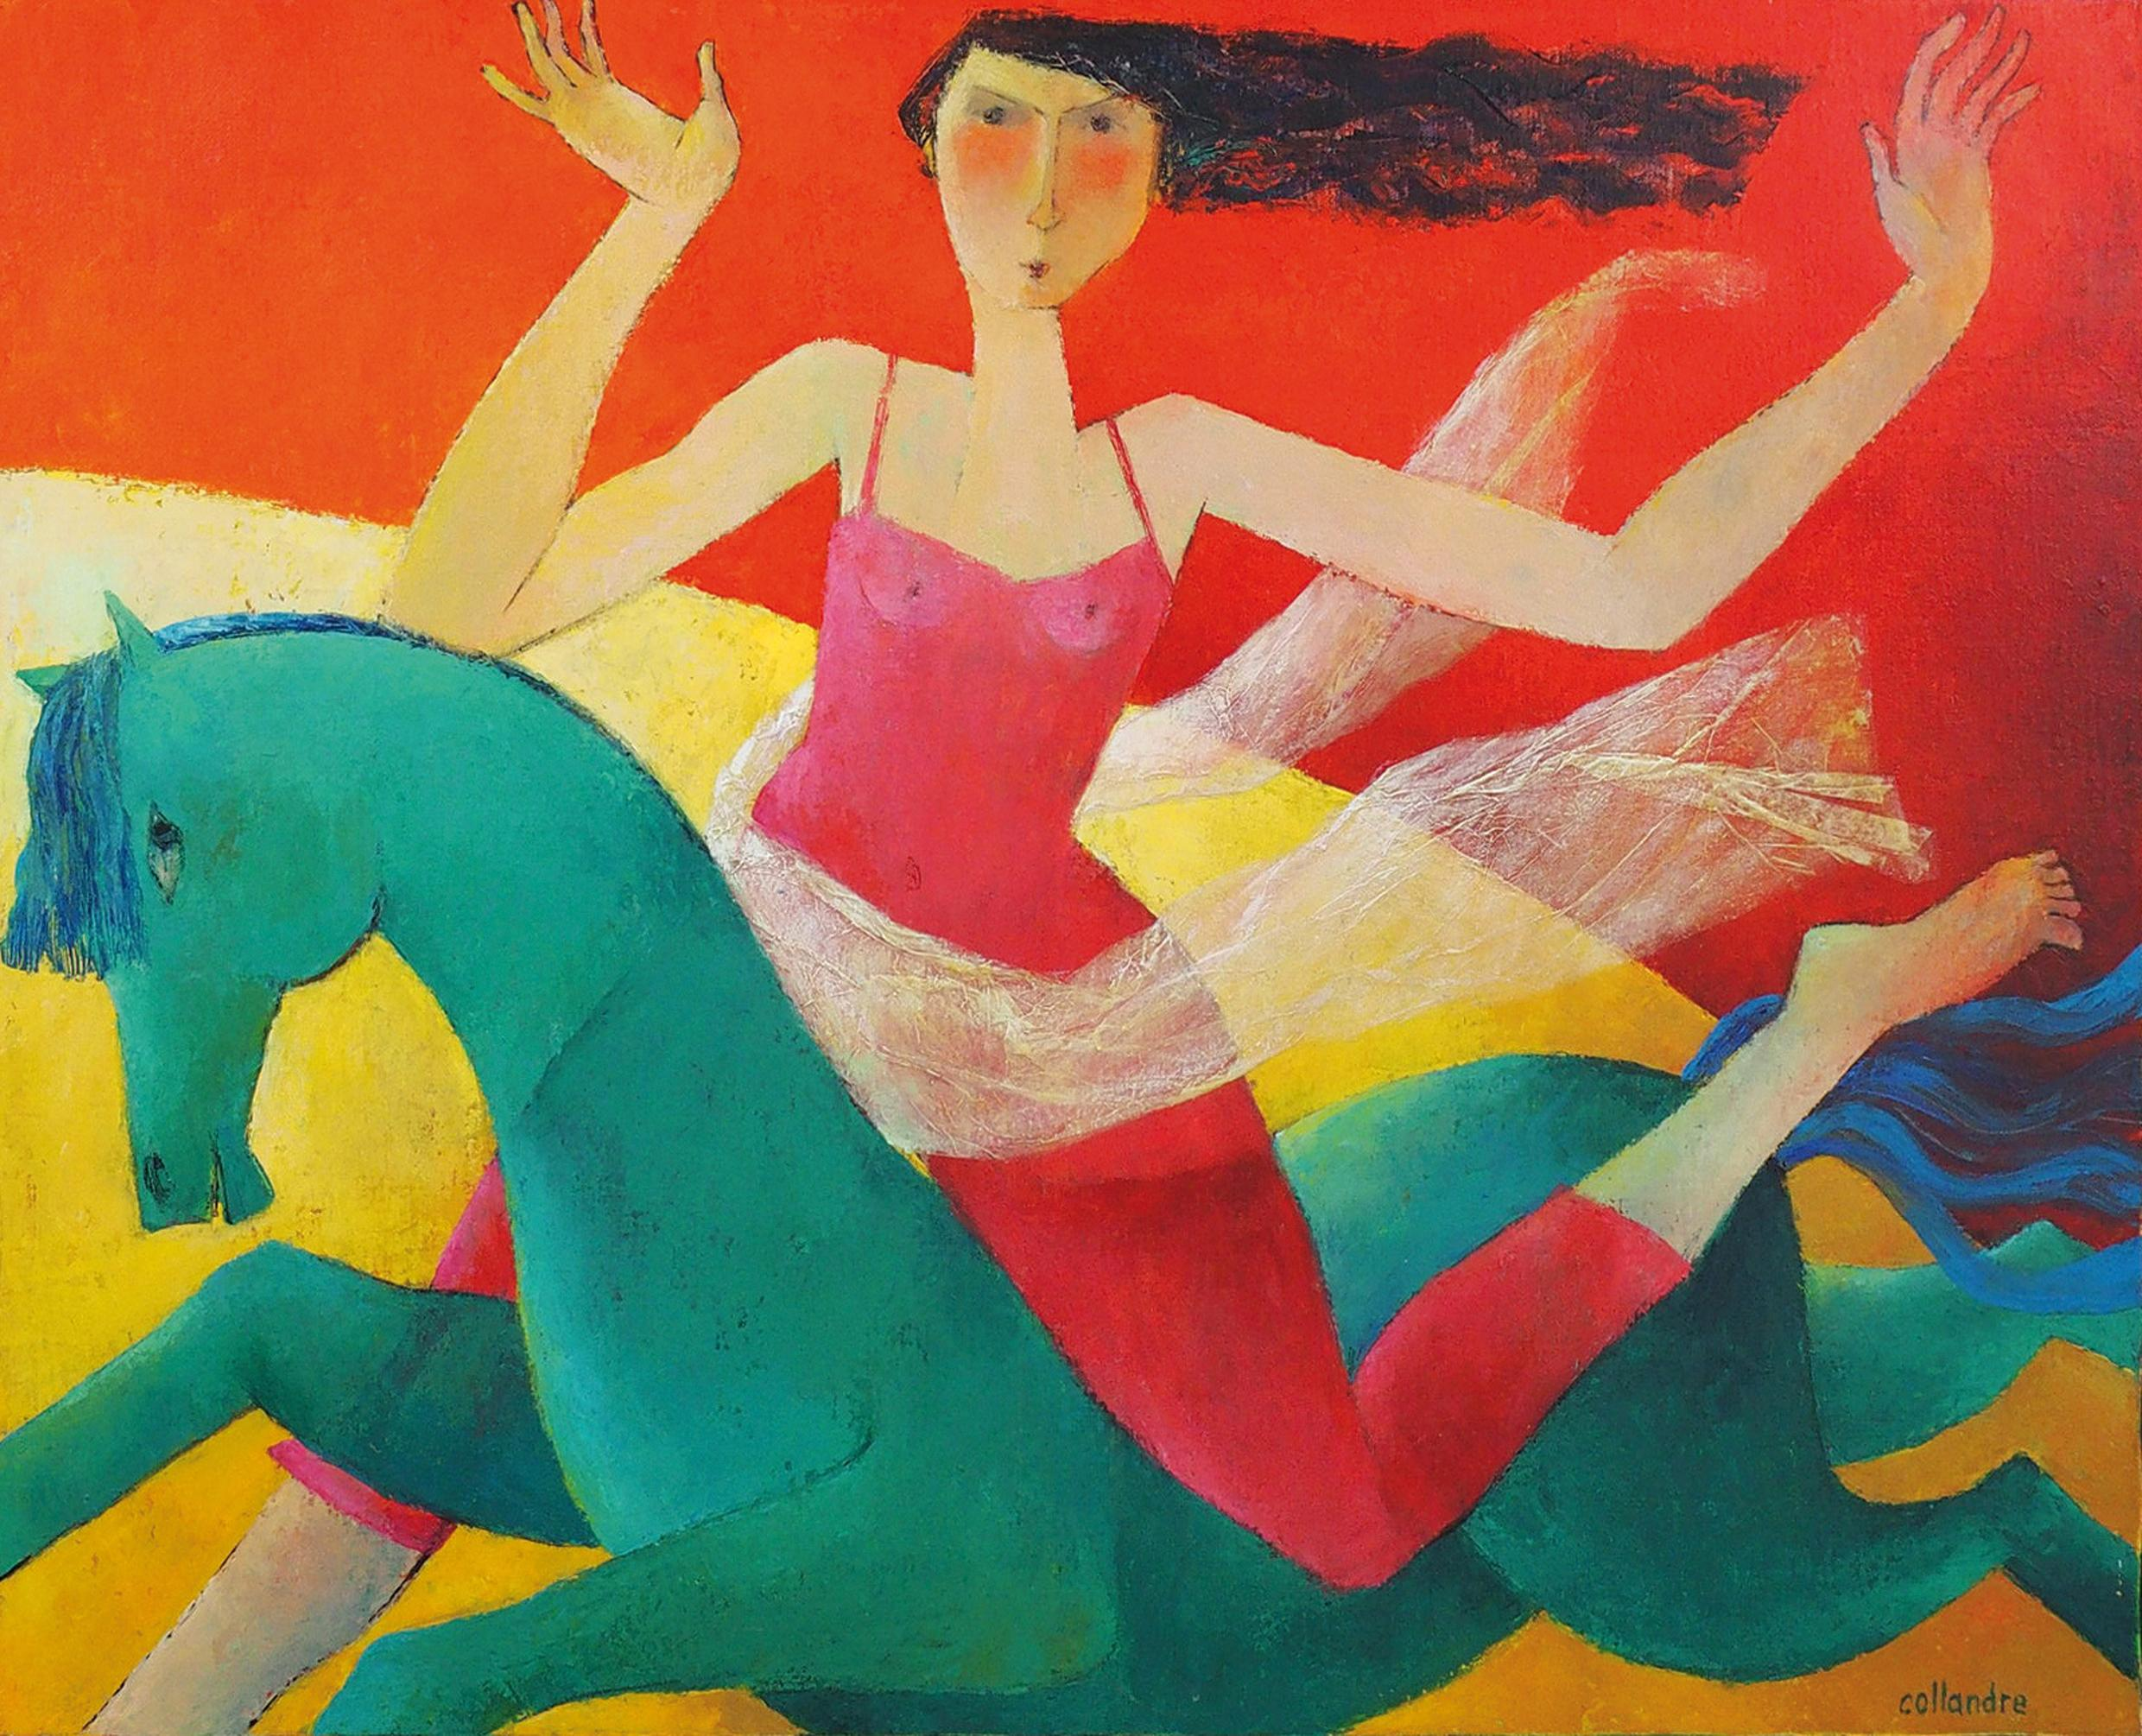 """""""The Small Horsewoman"""", Girl in Red on a Green Horse Figurative Acrylic Painting"""